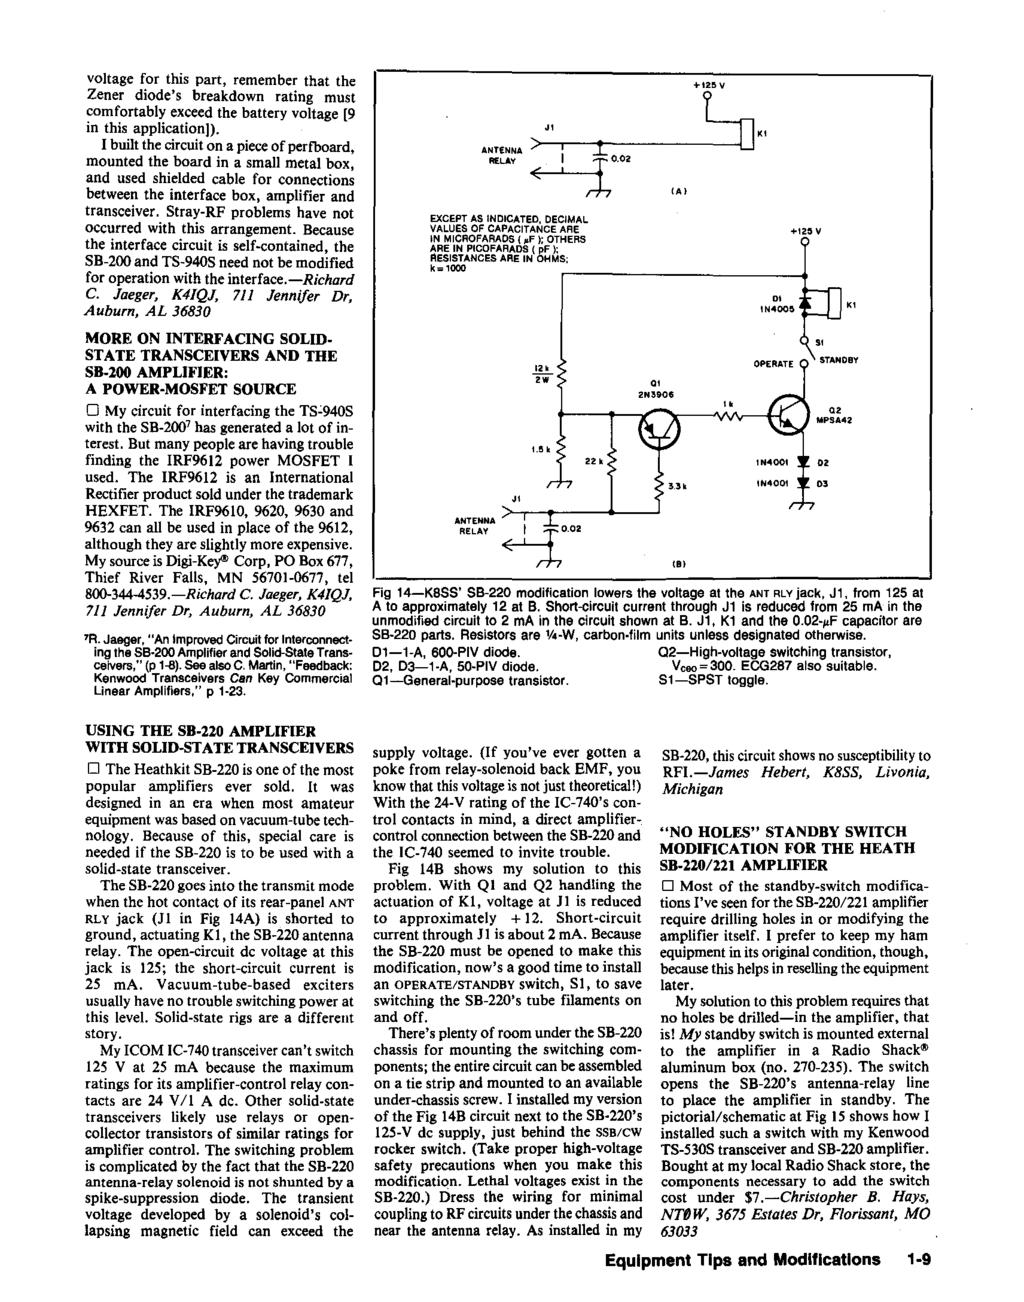 Hints And Kinks For The Radio Amateur Pdf Lm386 As Multipurpose Circuit Diagram Audiocircuit Voltage This Part Remember That Zener Diodes Breakdown Rating Must Comfortably Exceed